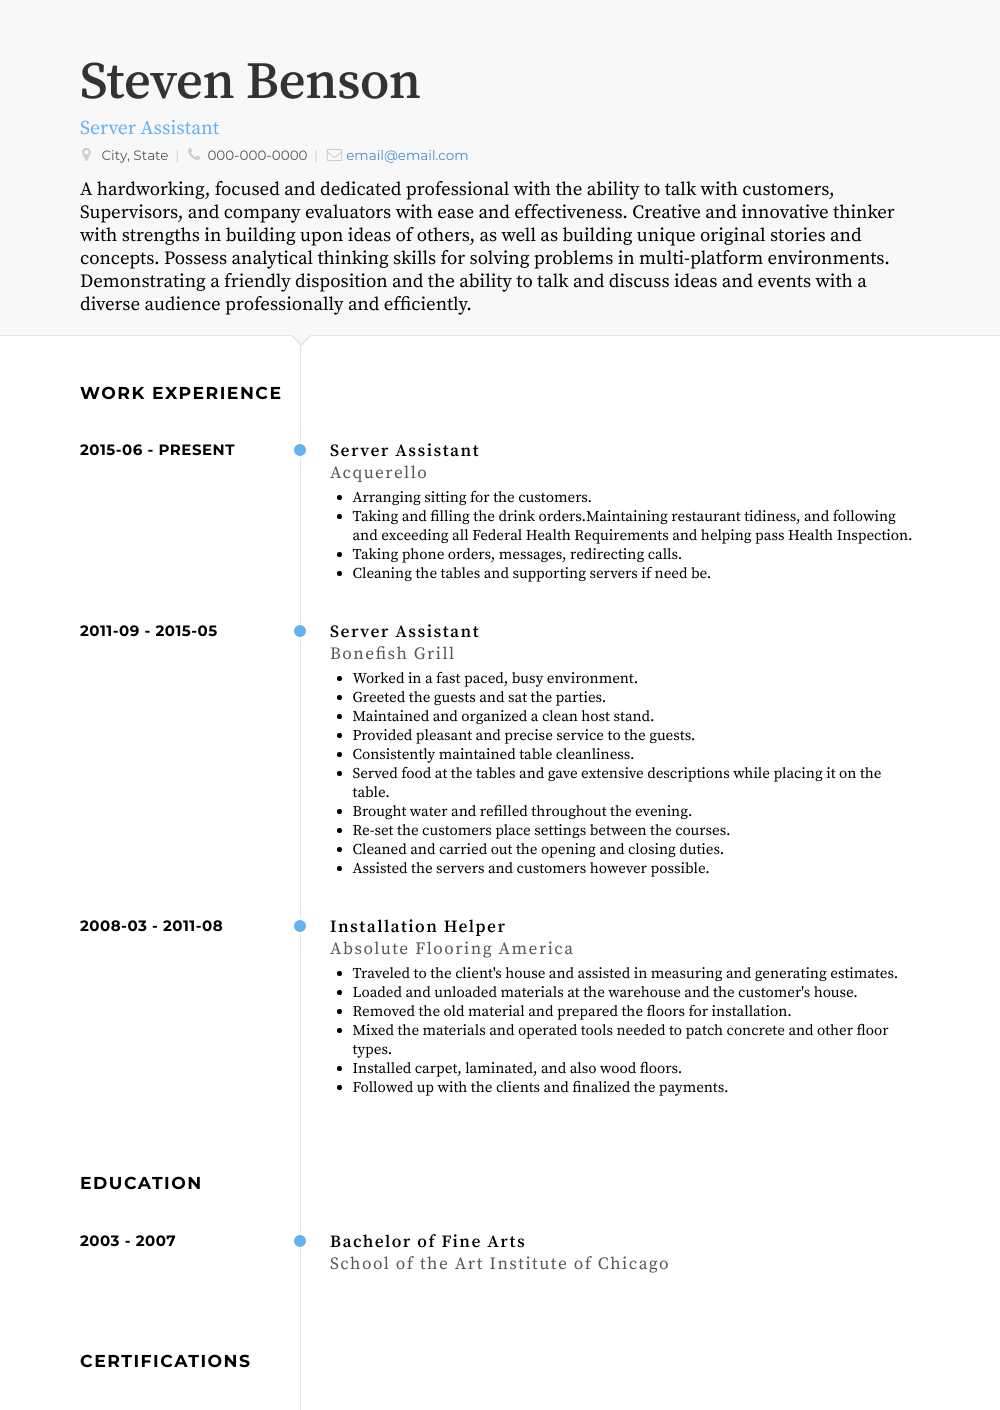 Server Assistant Resume Samples Templates Visualcv